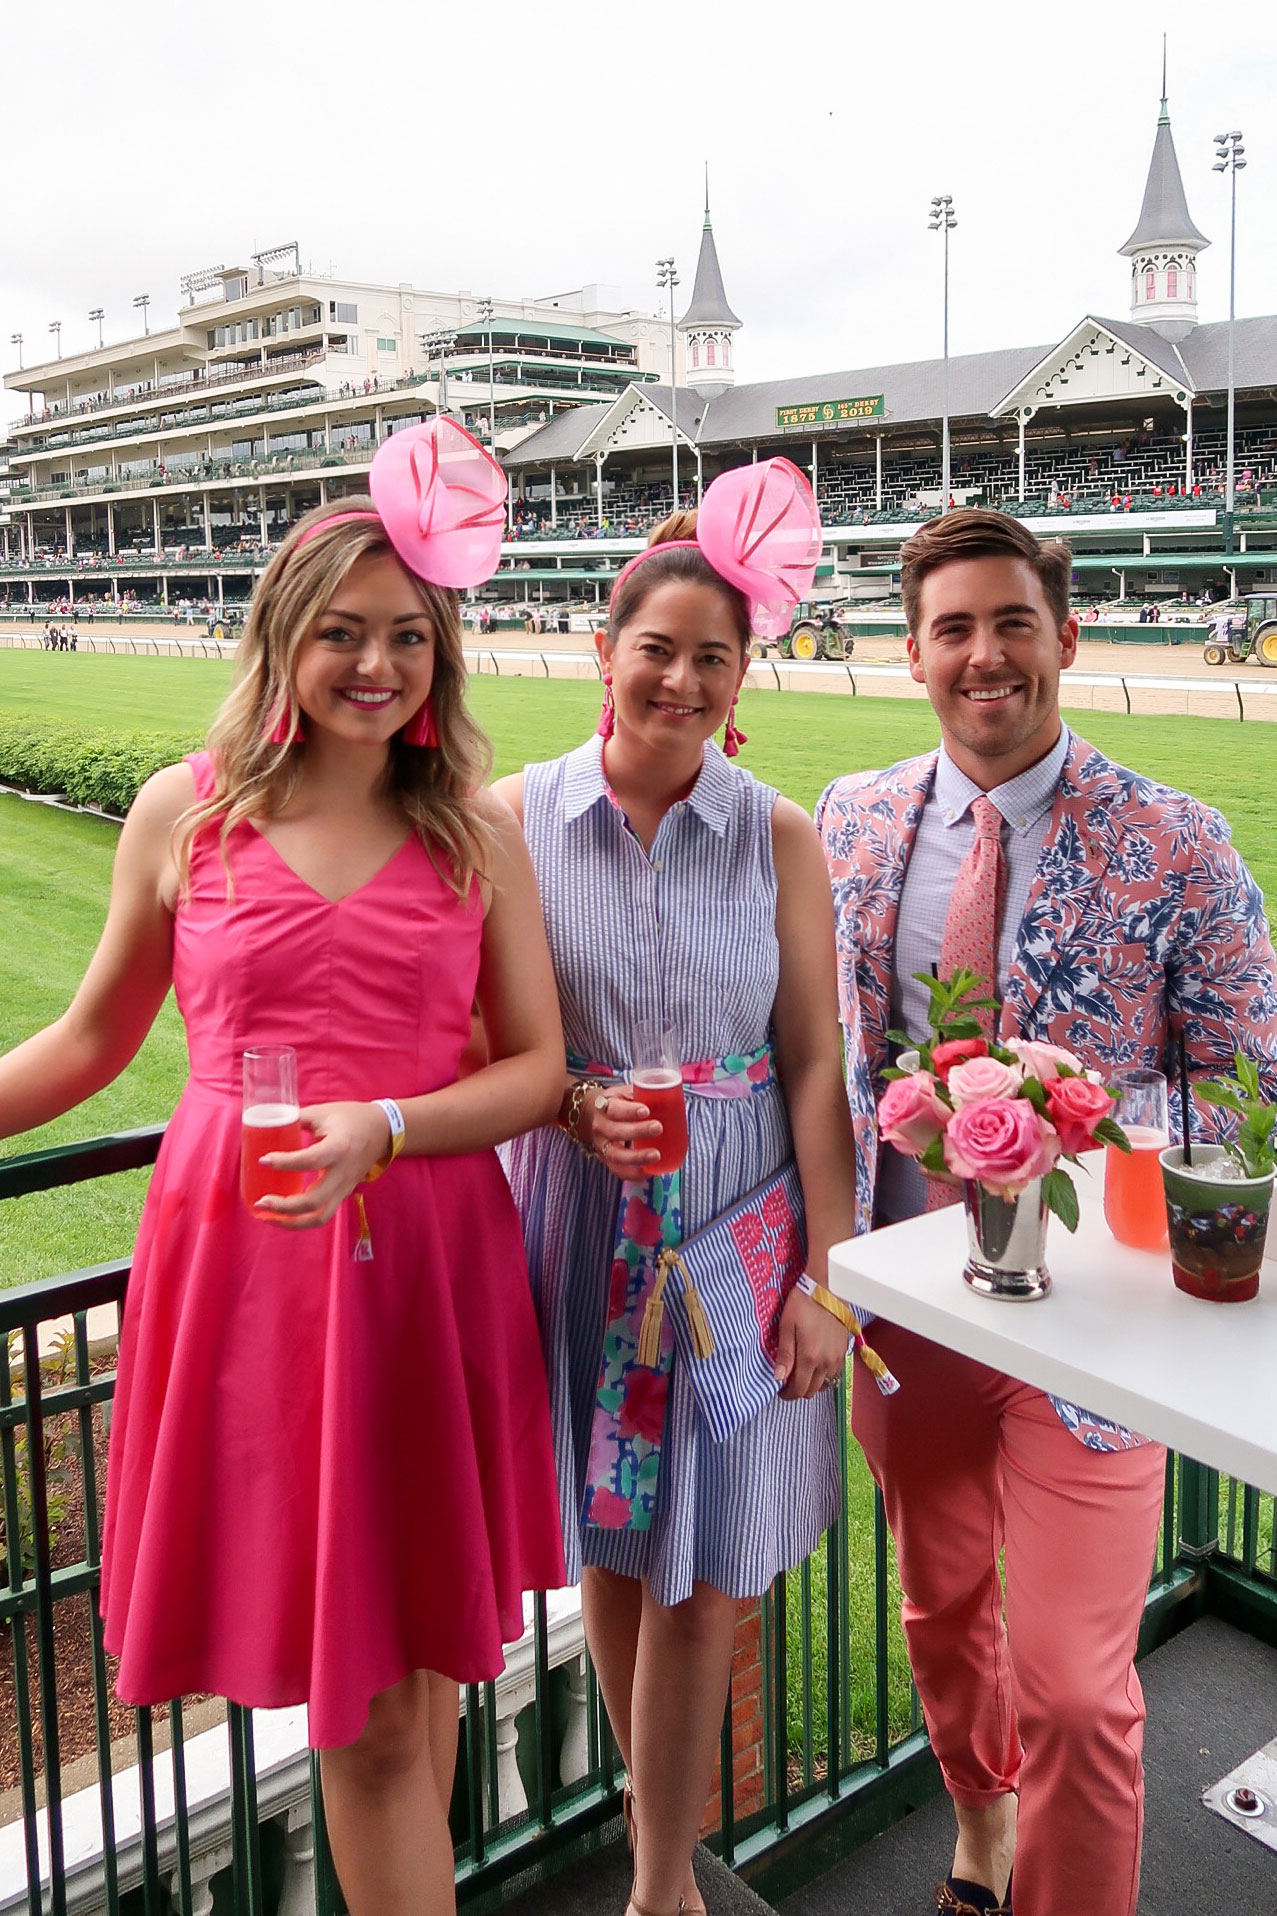 Kentucky Oaks Vineyard Vines